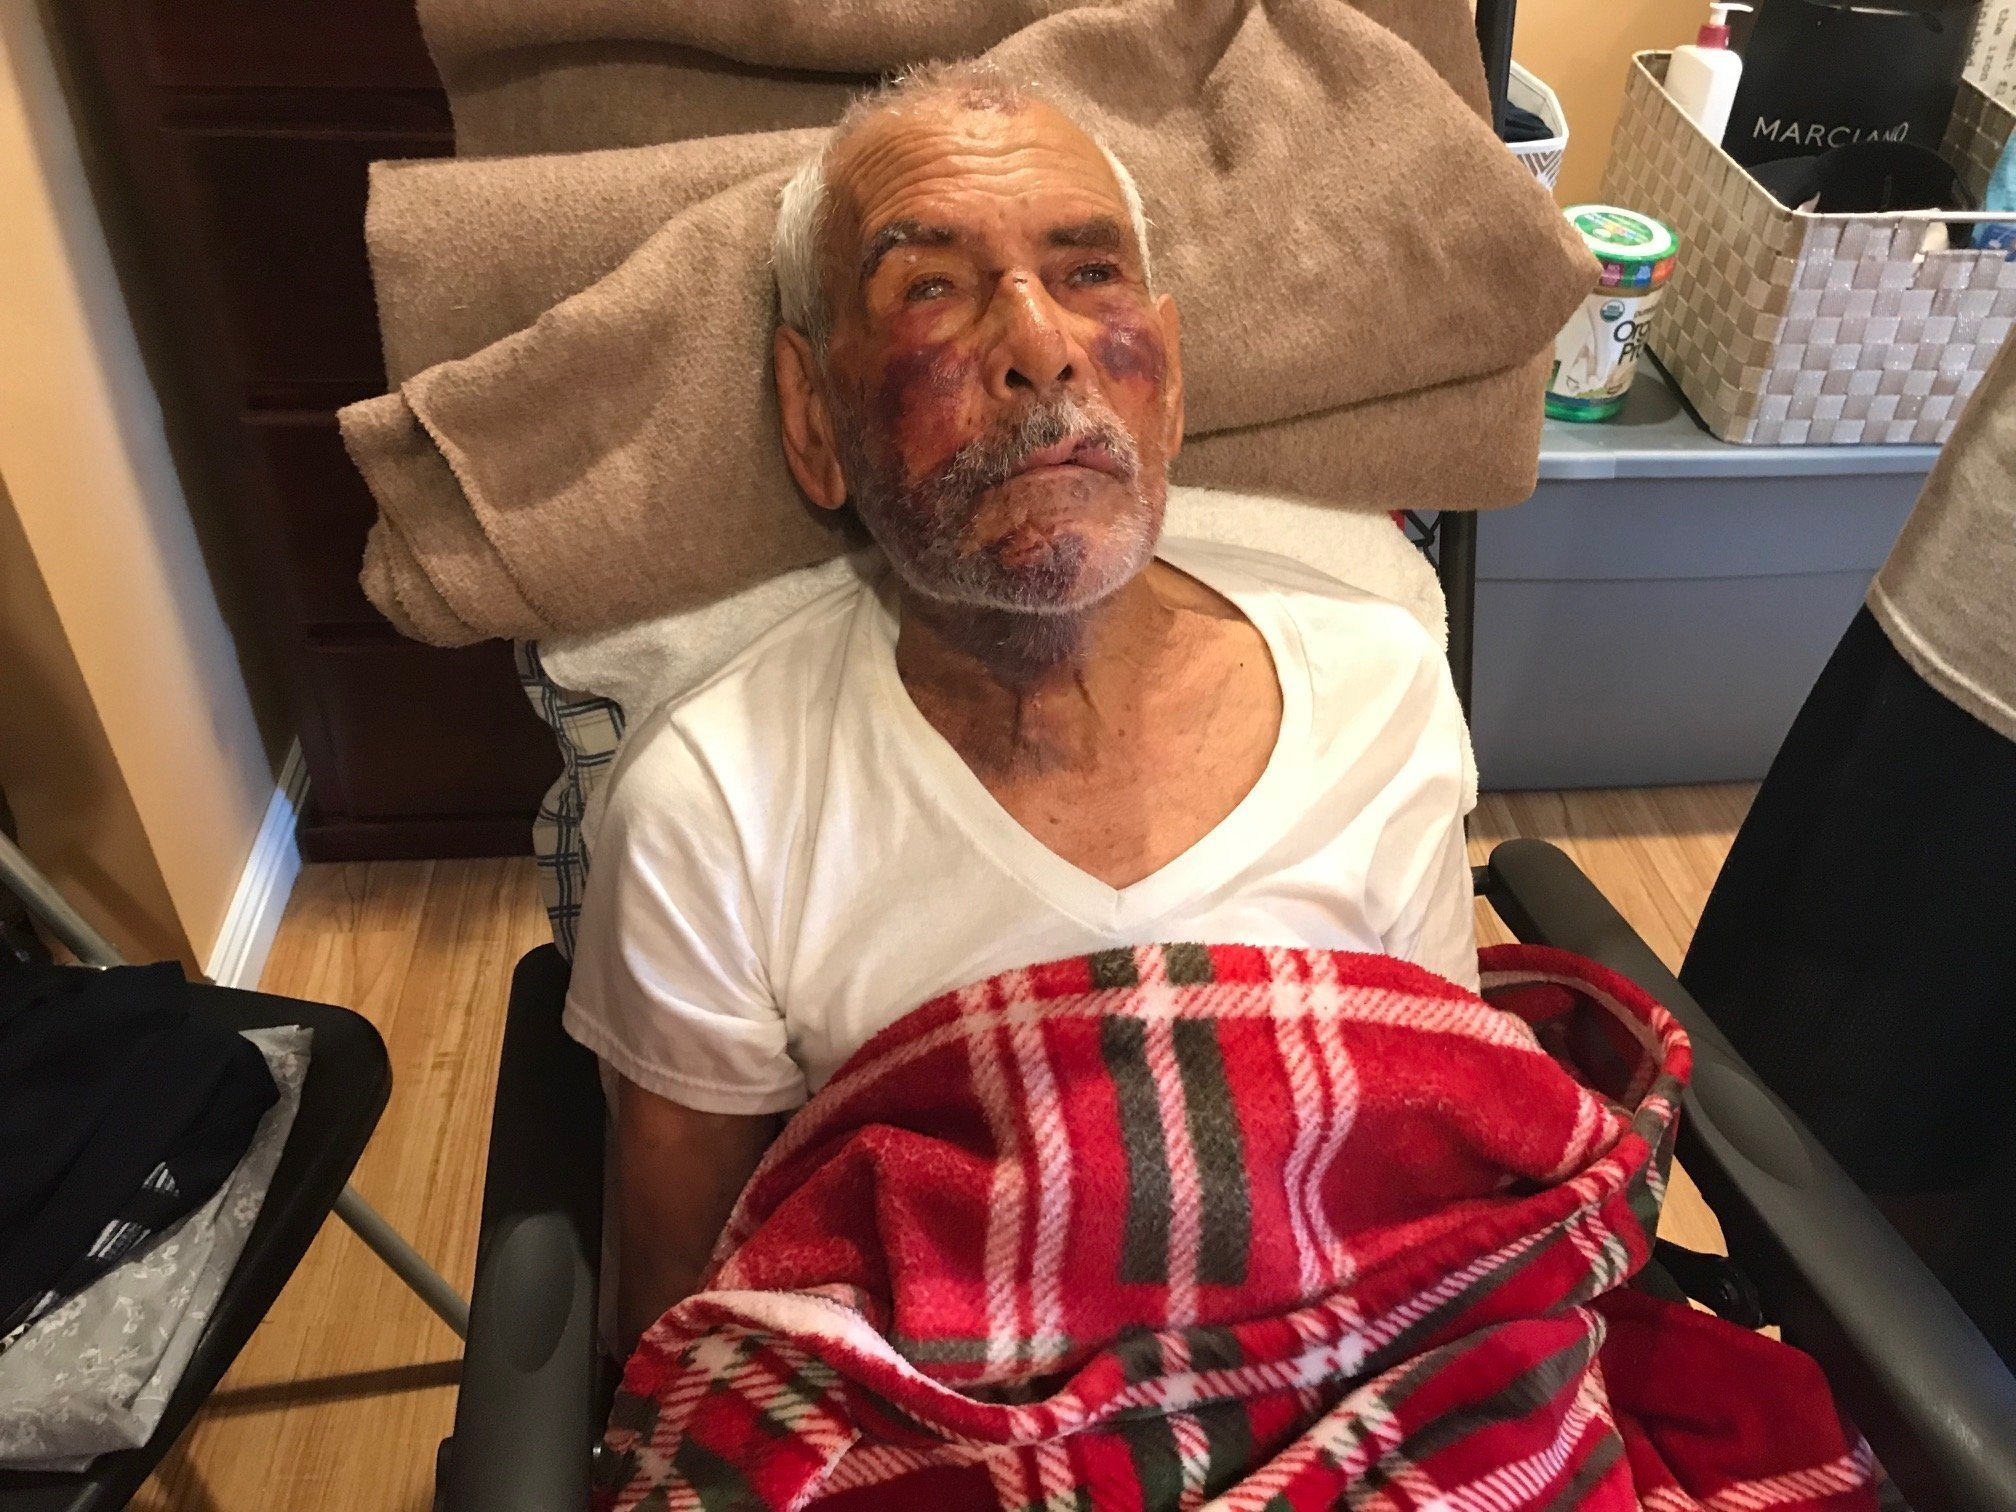 The 91-year-old man who says he was beaten with a brick in Willowbrook, California, doesn't resent the woman who assaulted him, he told CNN affiliate KABC.